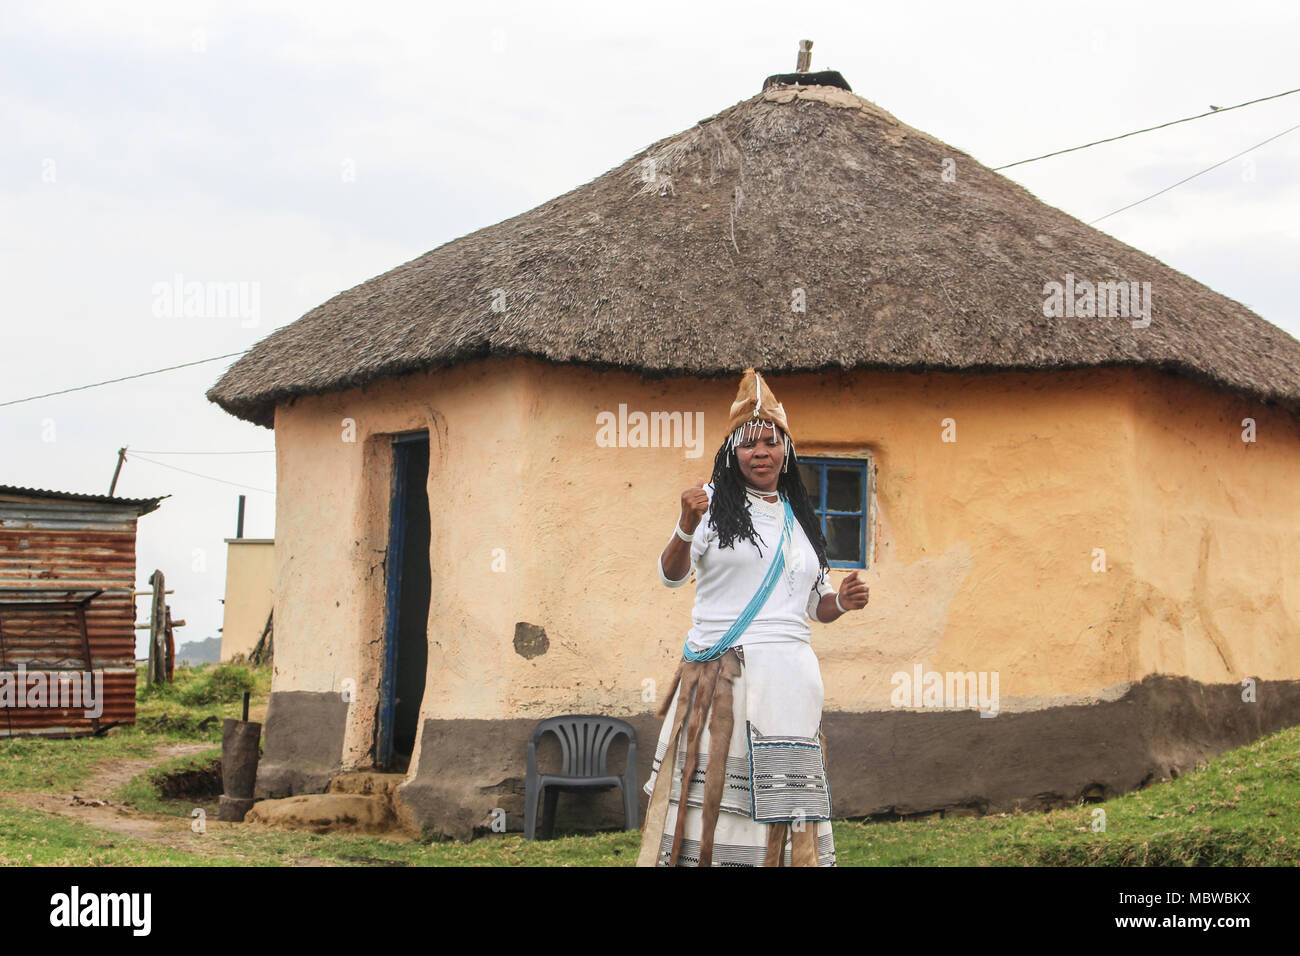 Traditional Healer from Xhosa culture in the Transkei region of South Africa - Stock Image